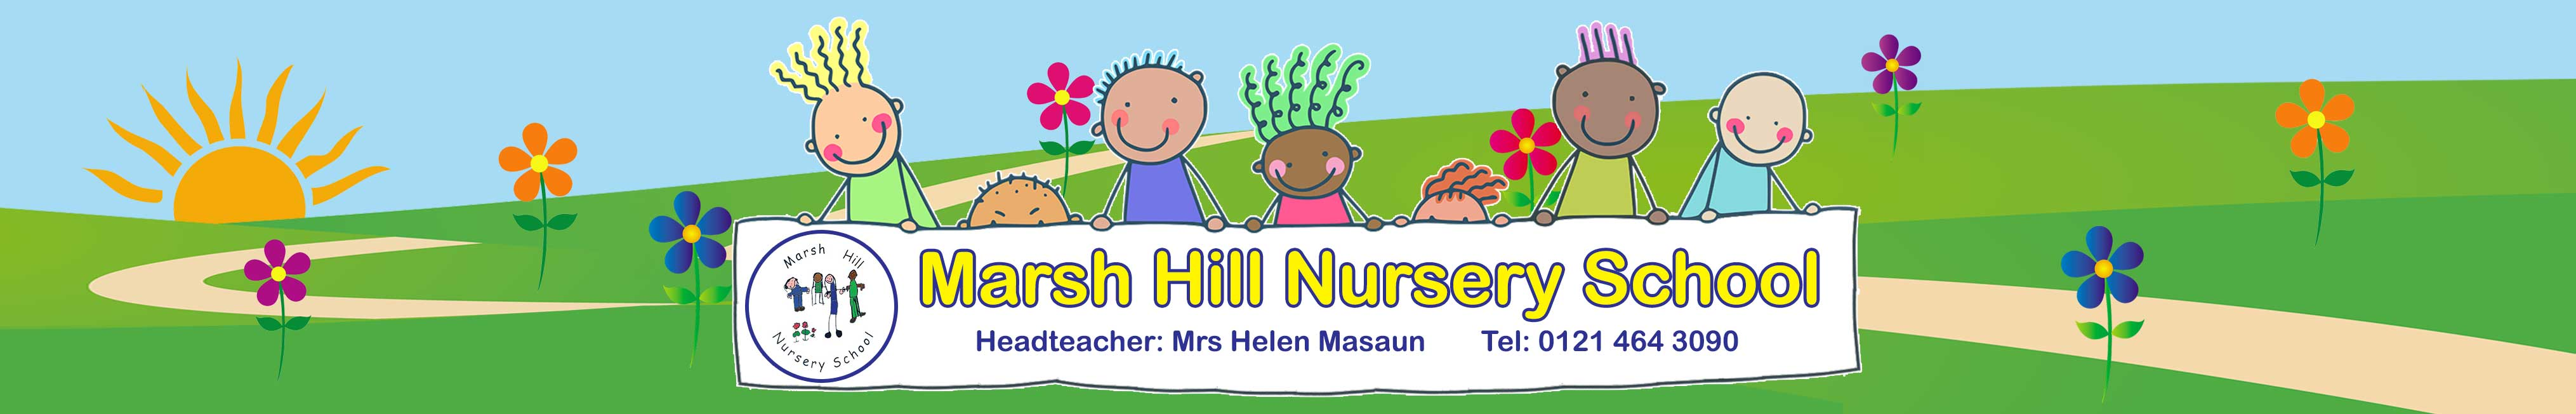 Marsh Hill Nursery School